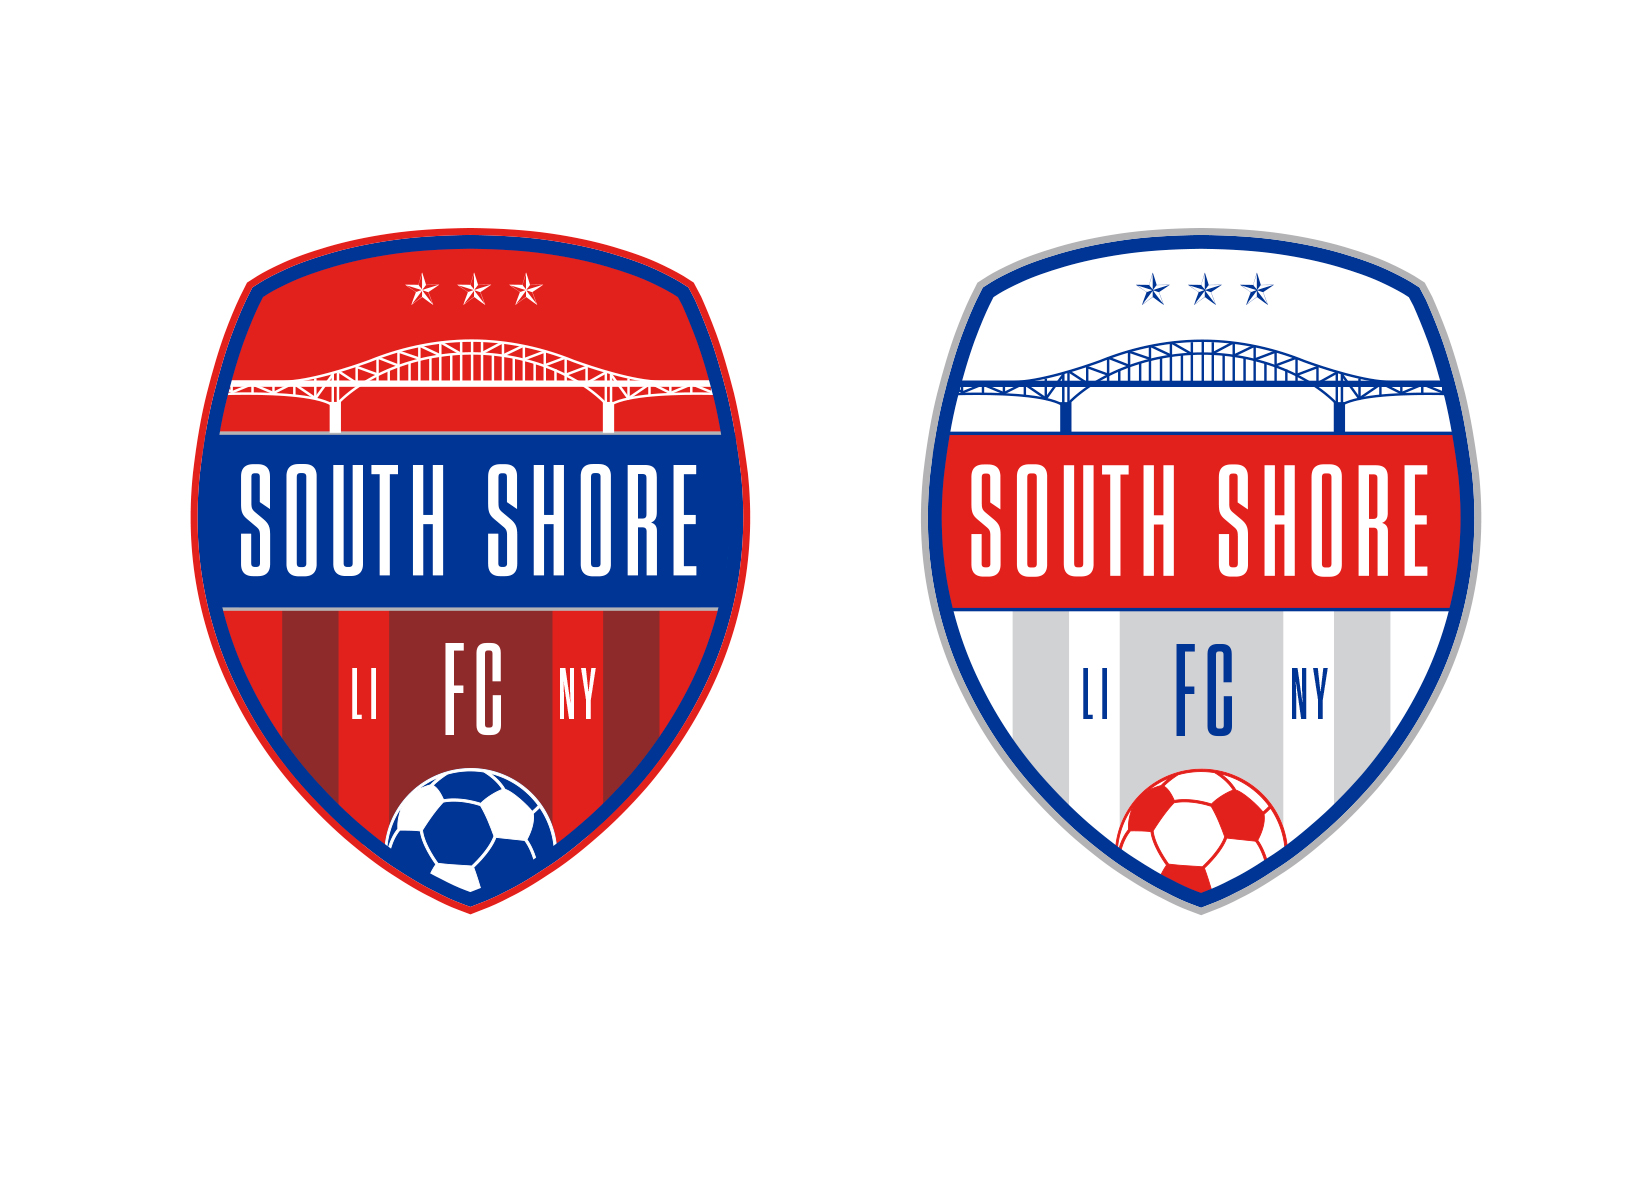 custom-soccer-logo-design-for-south-shore-fc-jordan-fretz-1.jpg